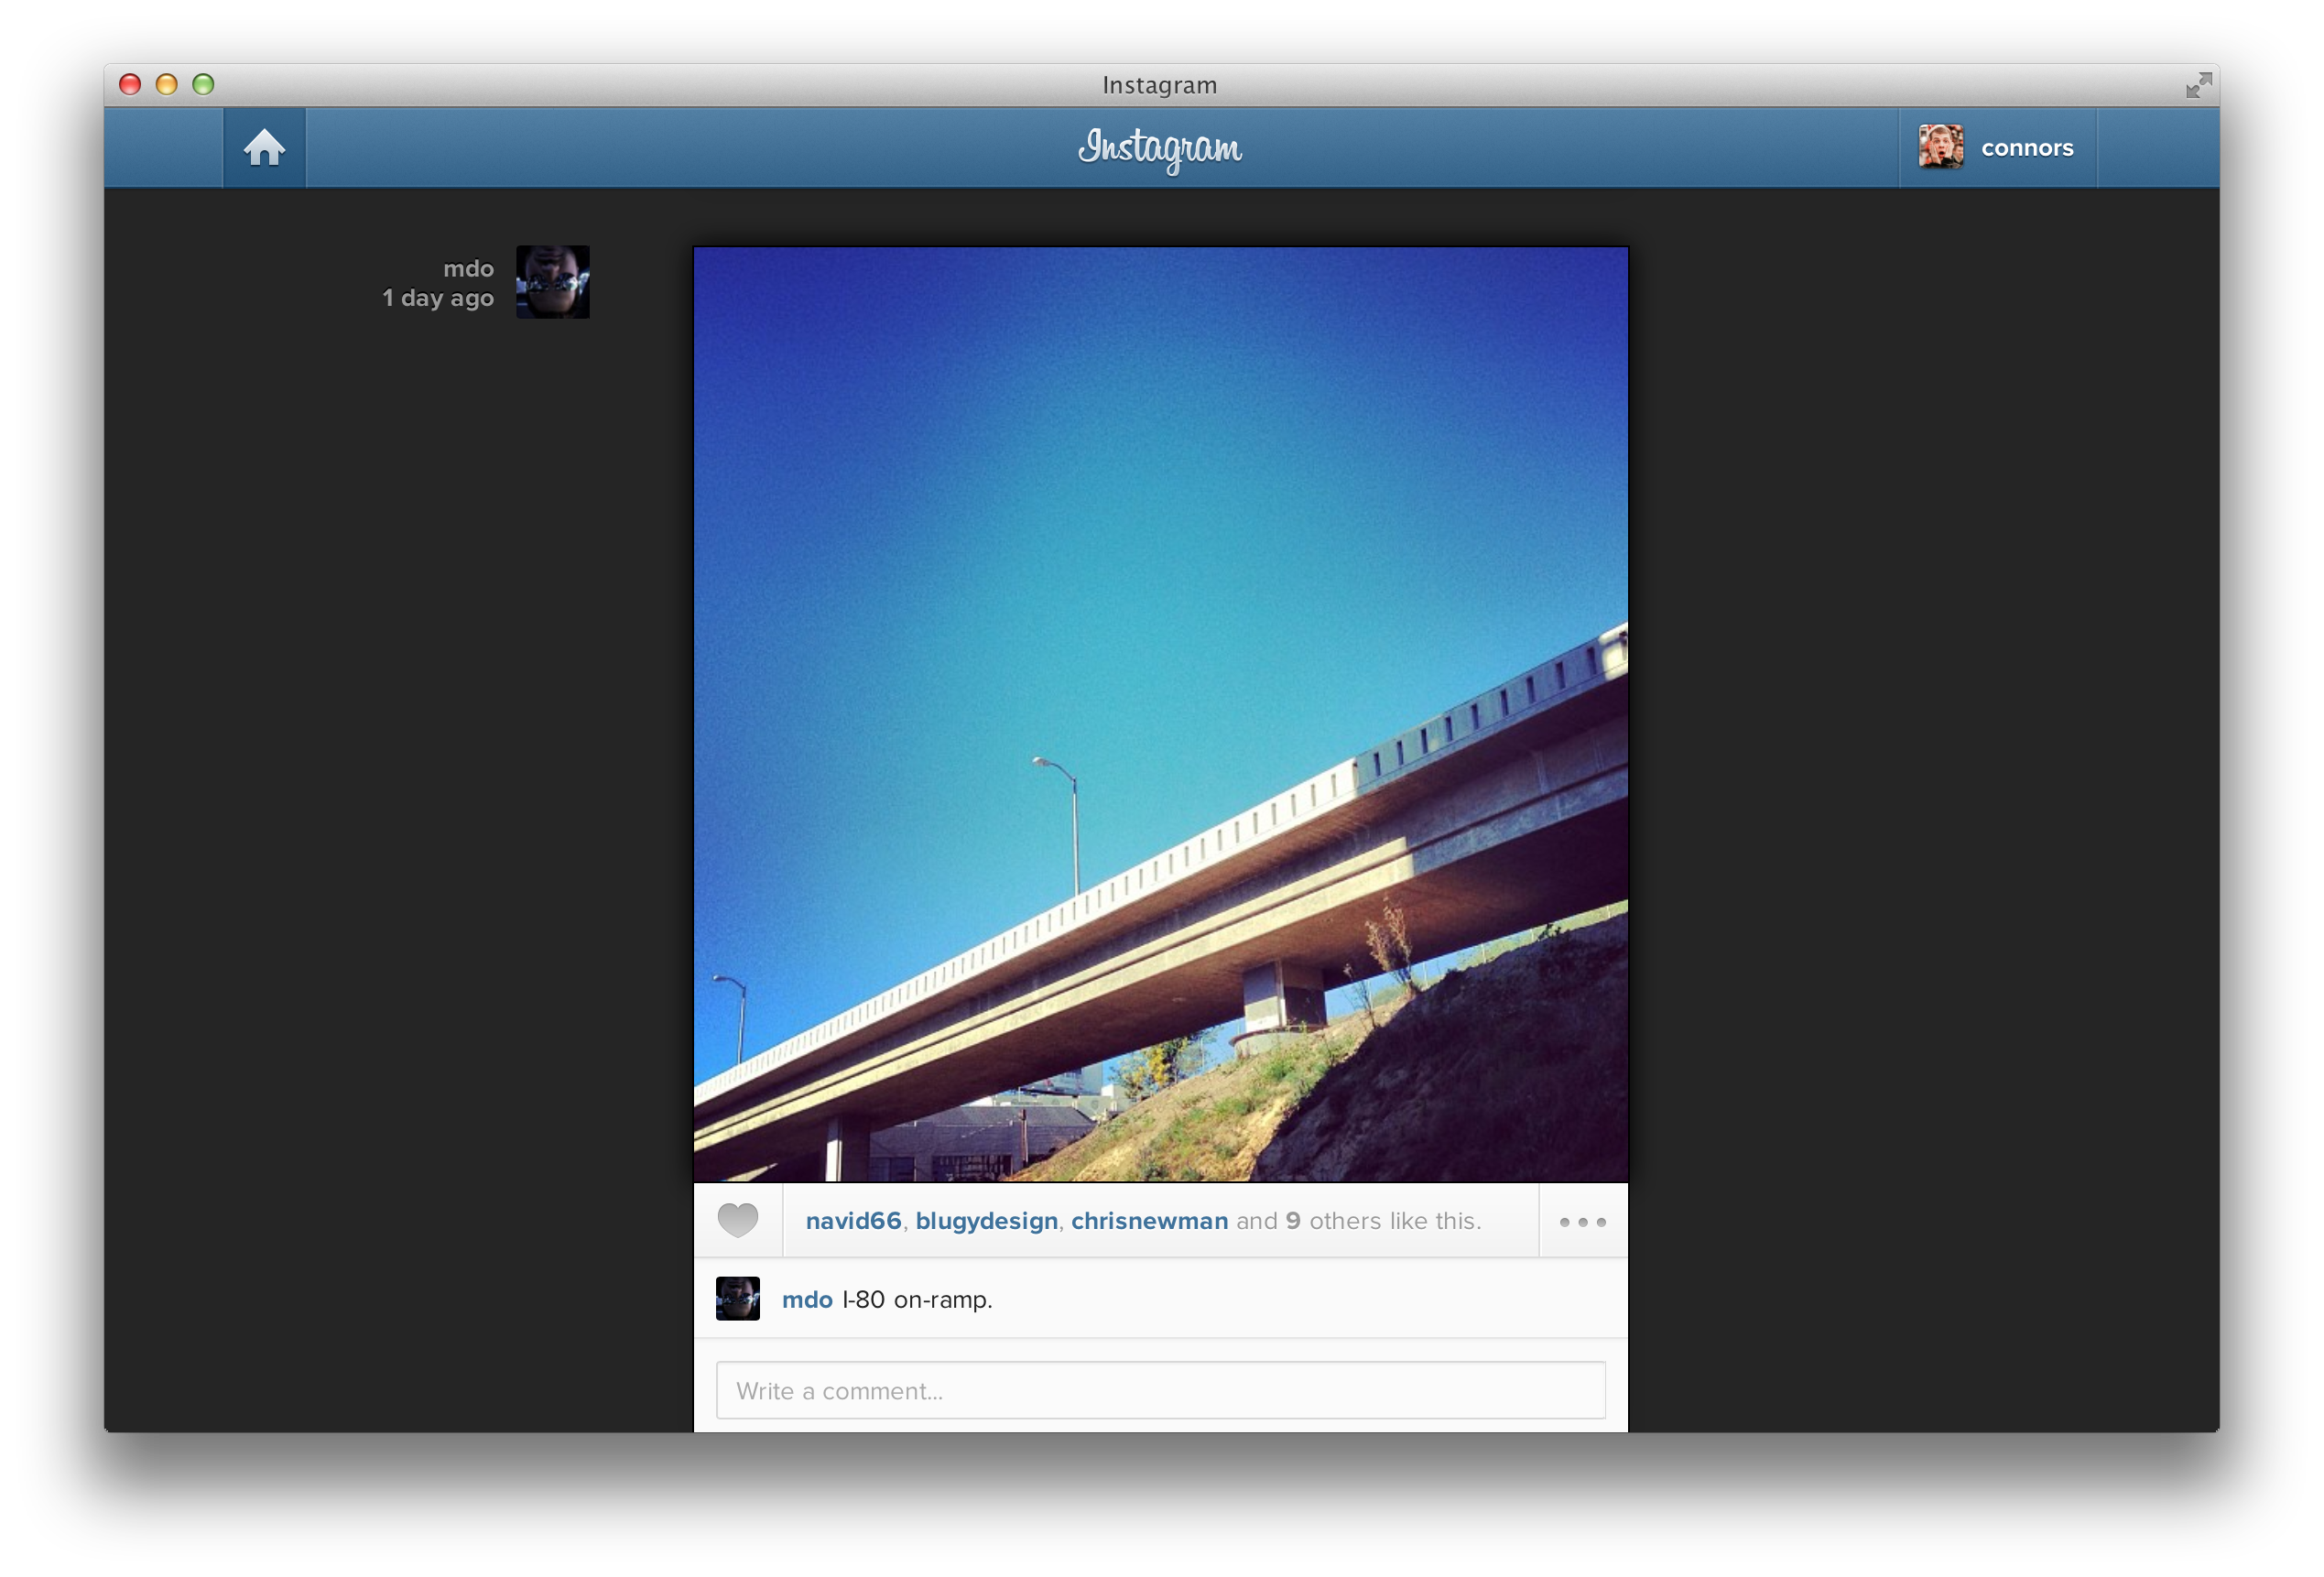 GitHub - connors/instagram-user-style: I love the new photo